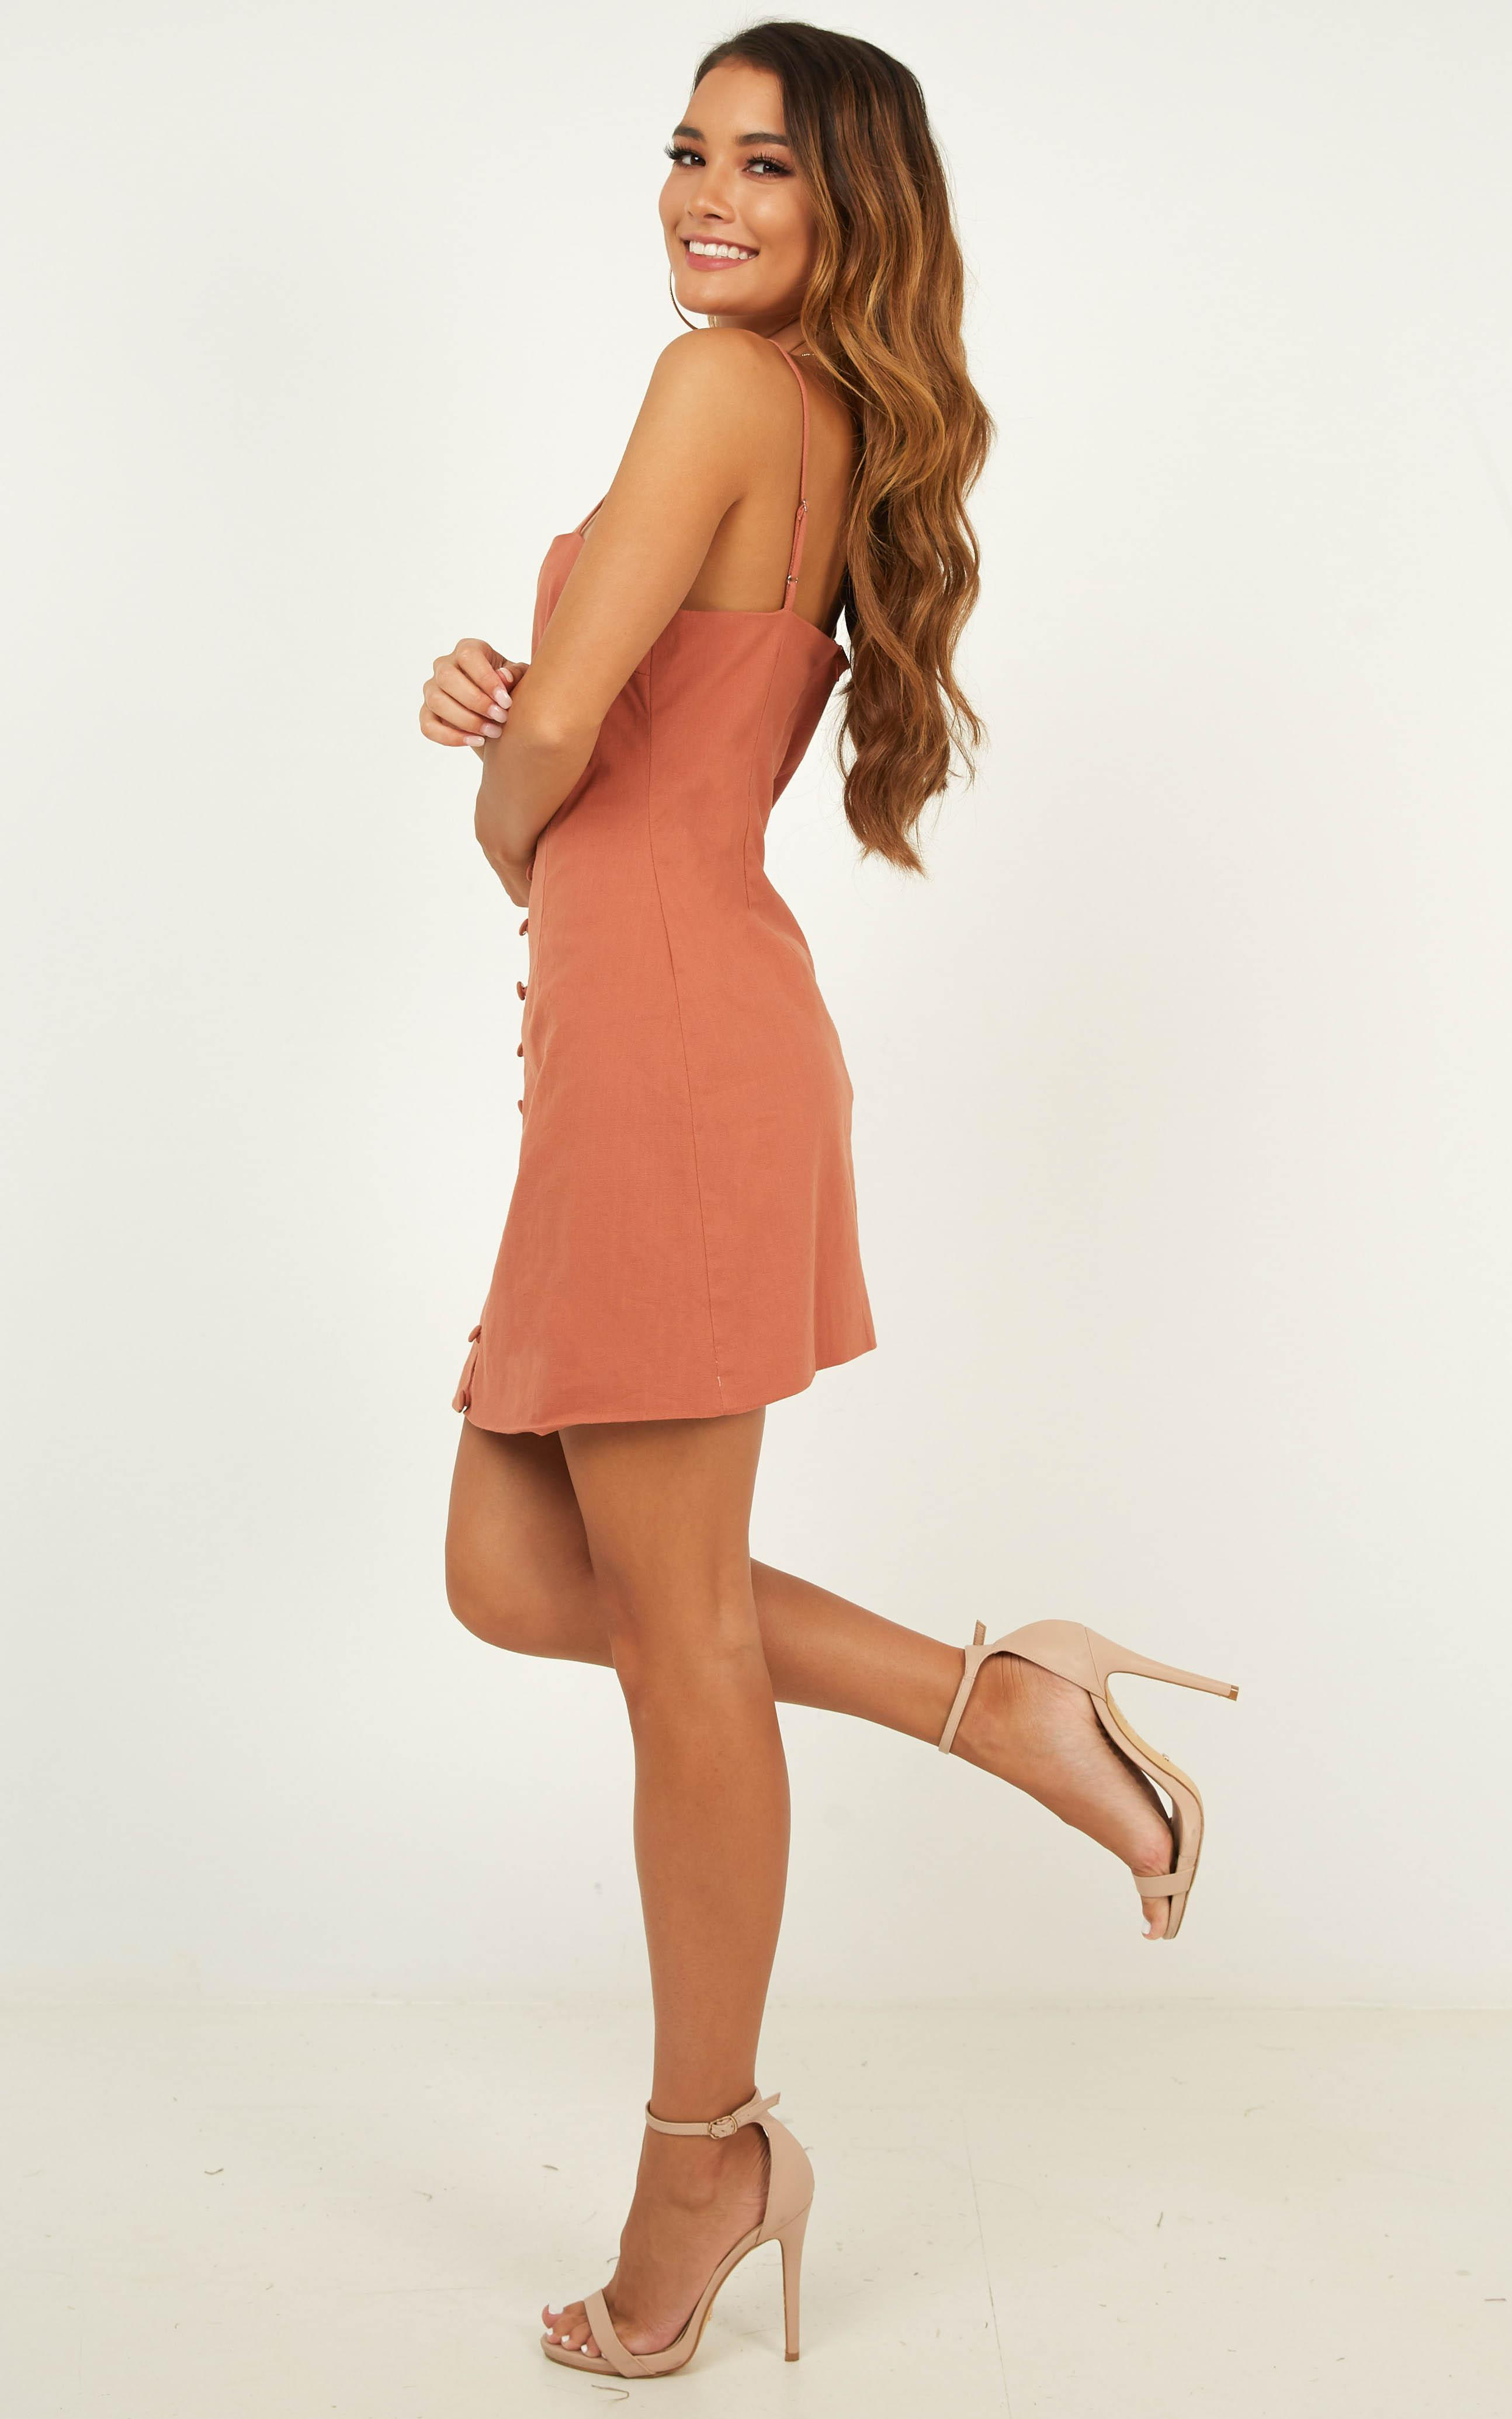 Knew it Dress in dusty rose - 20 (XXXXL), Pink, hi-res image number null